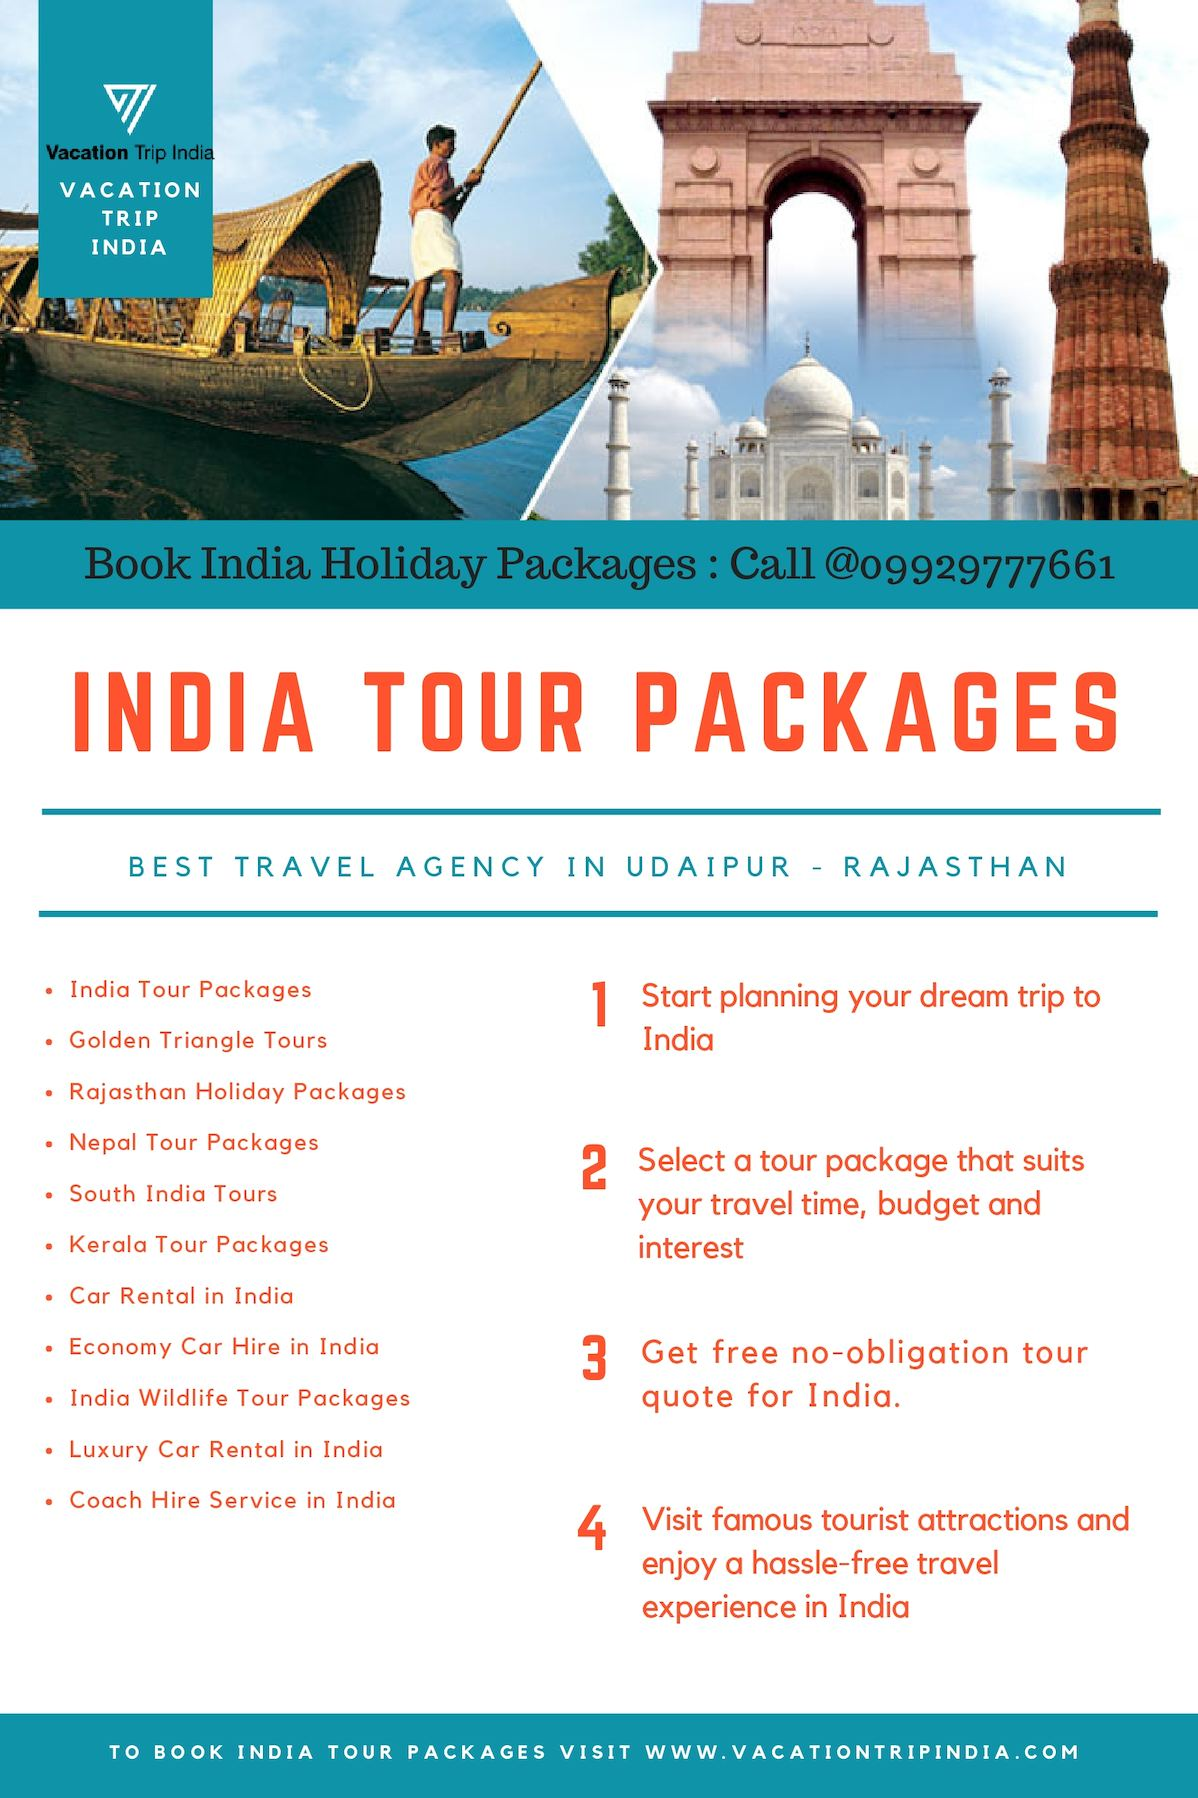 Calameo Bespoke India Tour Packages From Vacation Trip India